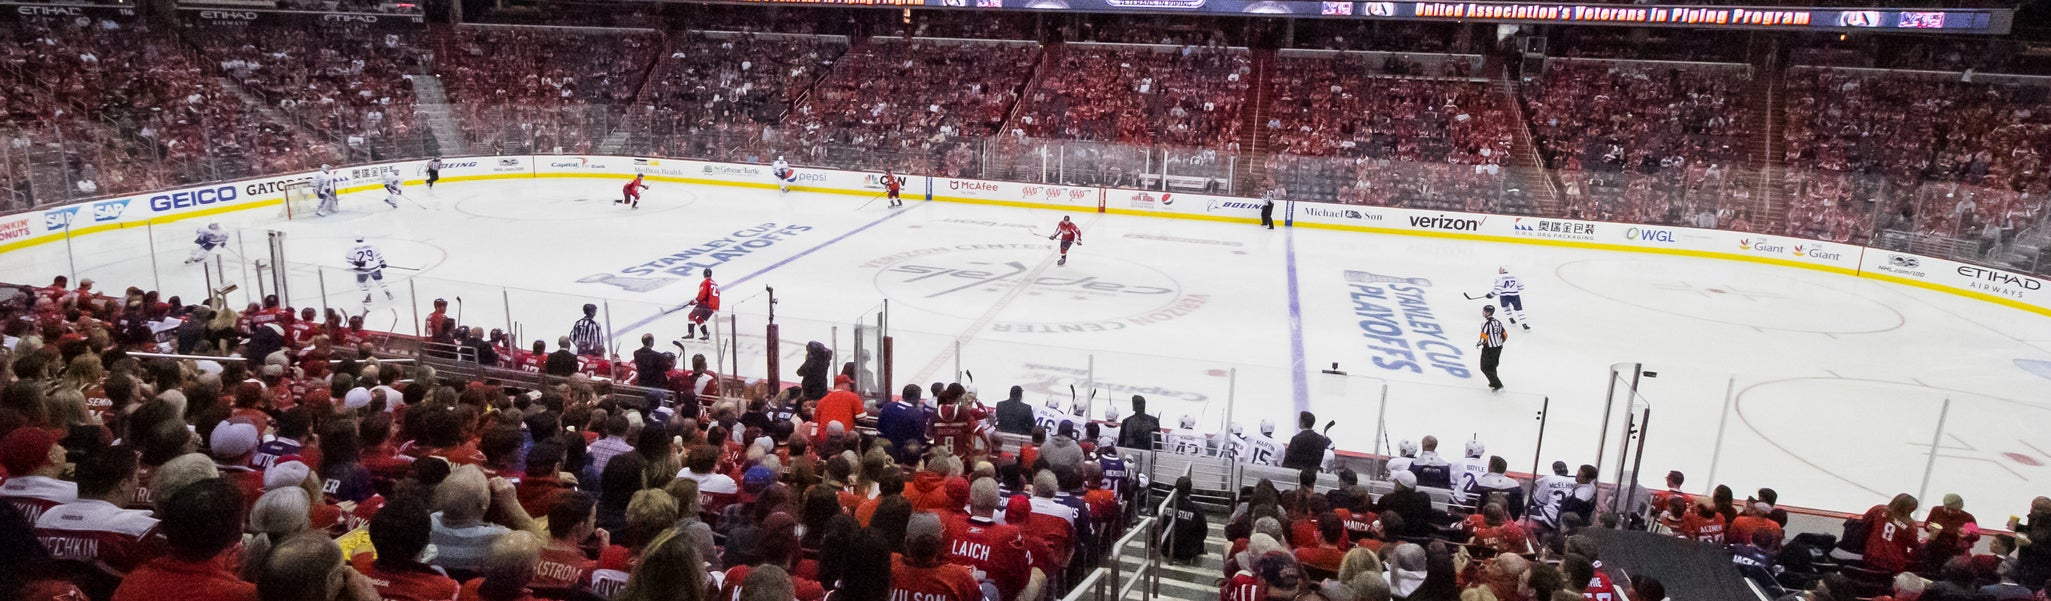 Seat view from LL Center Preferred